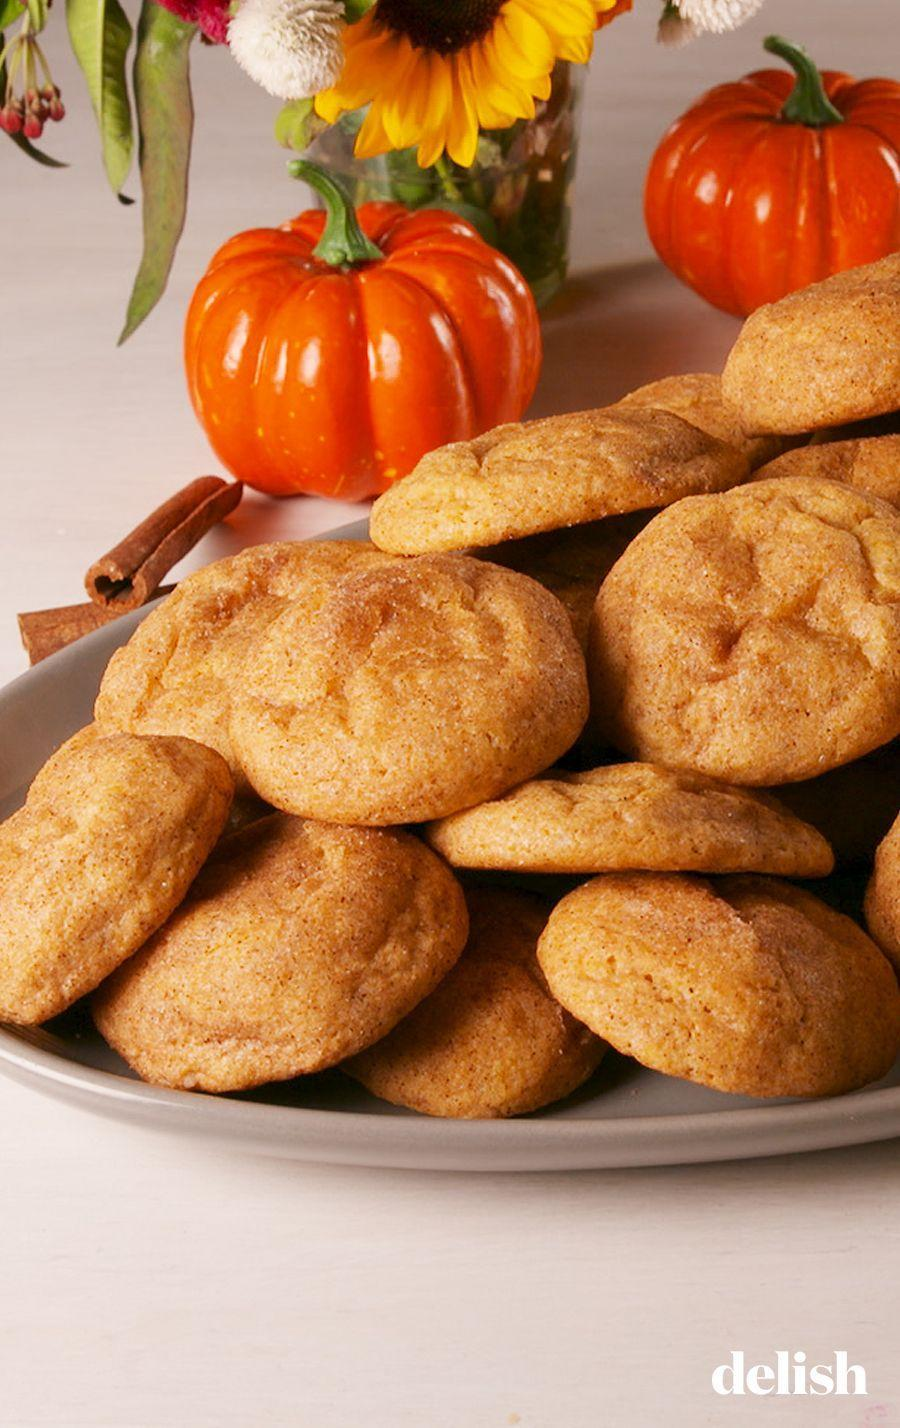 """<p>Pumpkin snickerdoodles are everything we dreamed they could be. Slightly chewy, tangy, and full of cinnamon and pumpkin. Go ahead an make a double batch. </p><p>Get the recipe from <a href=""""https://www.delish.com/cooking/recipe-ideas/a23941394/pumpkin-snickerdoodles-recipe/"""" rel=""""nofollow noopener"""" target=""""_blank"""" data-ylk=""""slk:Delish"""" class=""""link rapid-noclick-resp"""">Delish</a>.</p>"""